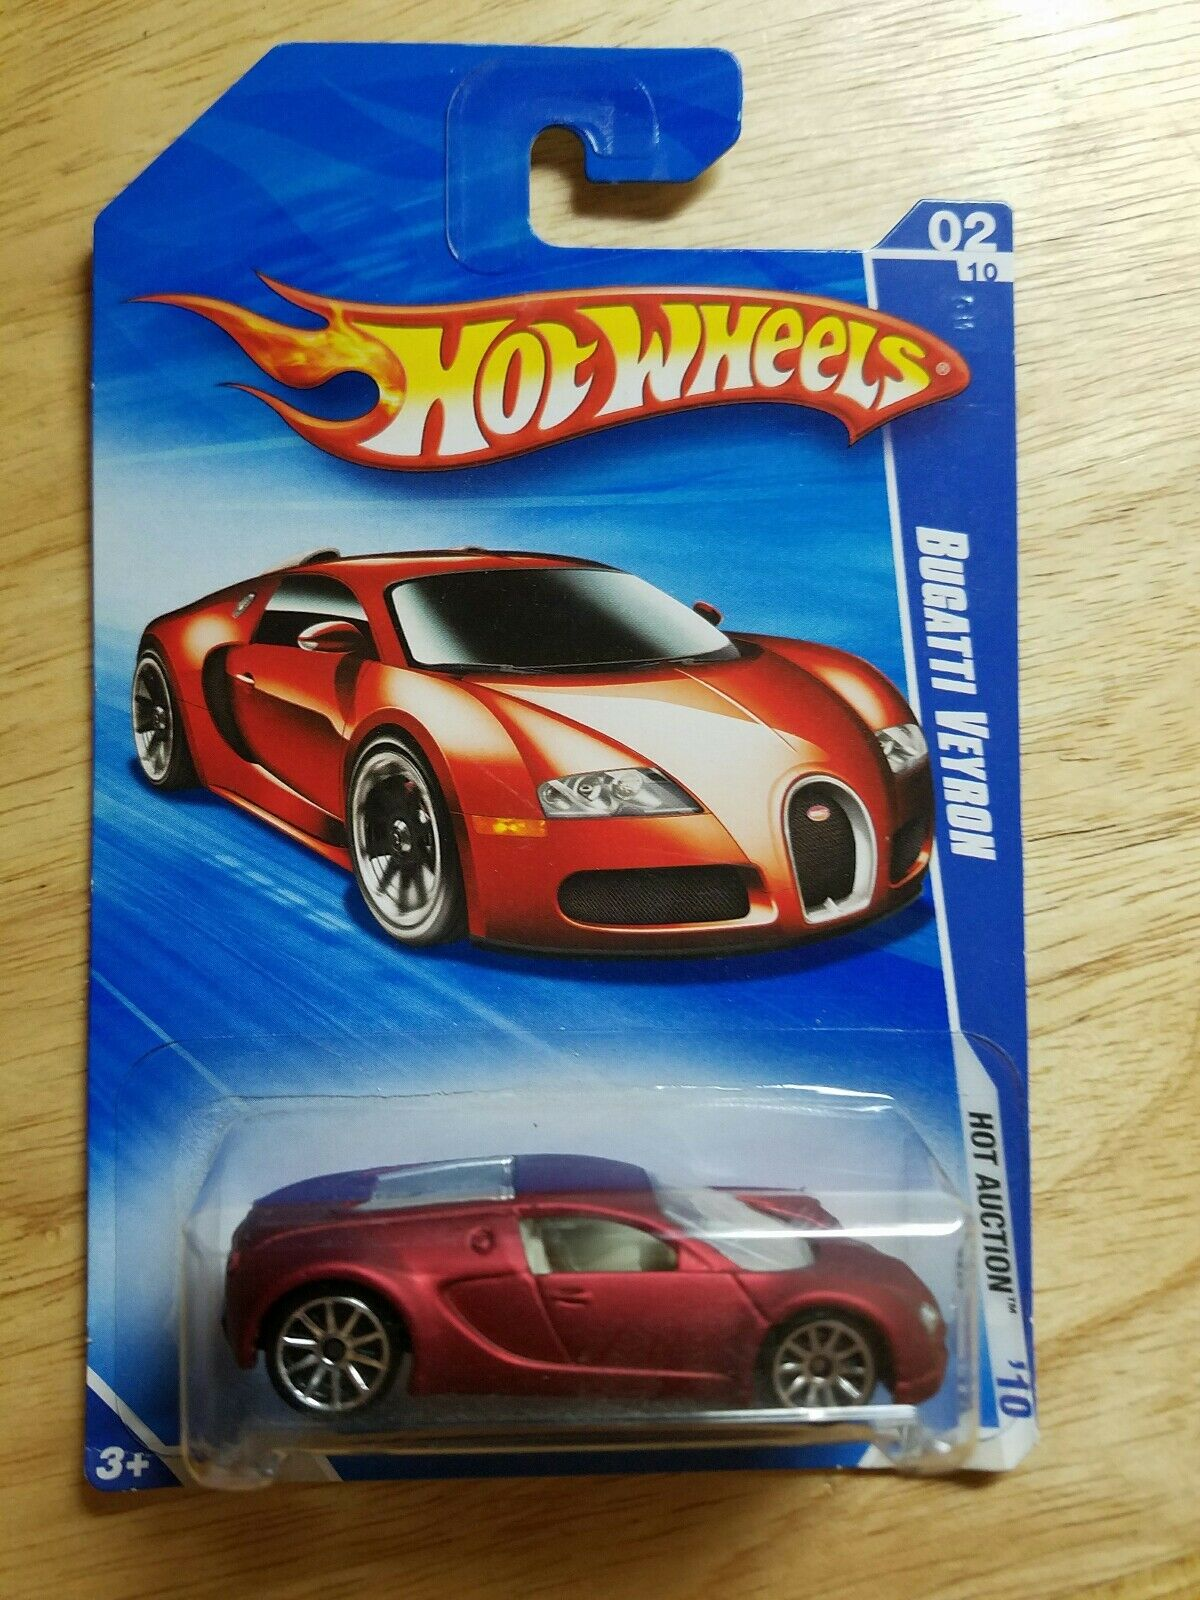 Hot wheels 2010 heiß auktion bugatti veyron 02   10 rote satin -   wal - mart exclusives